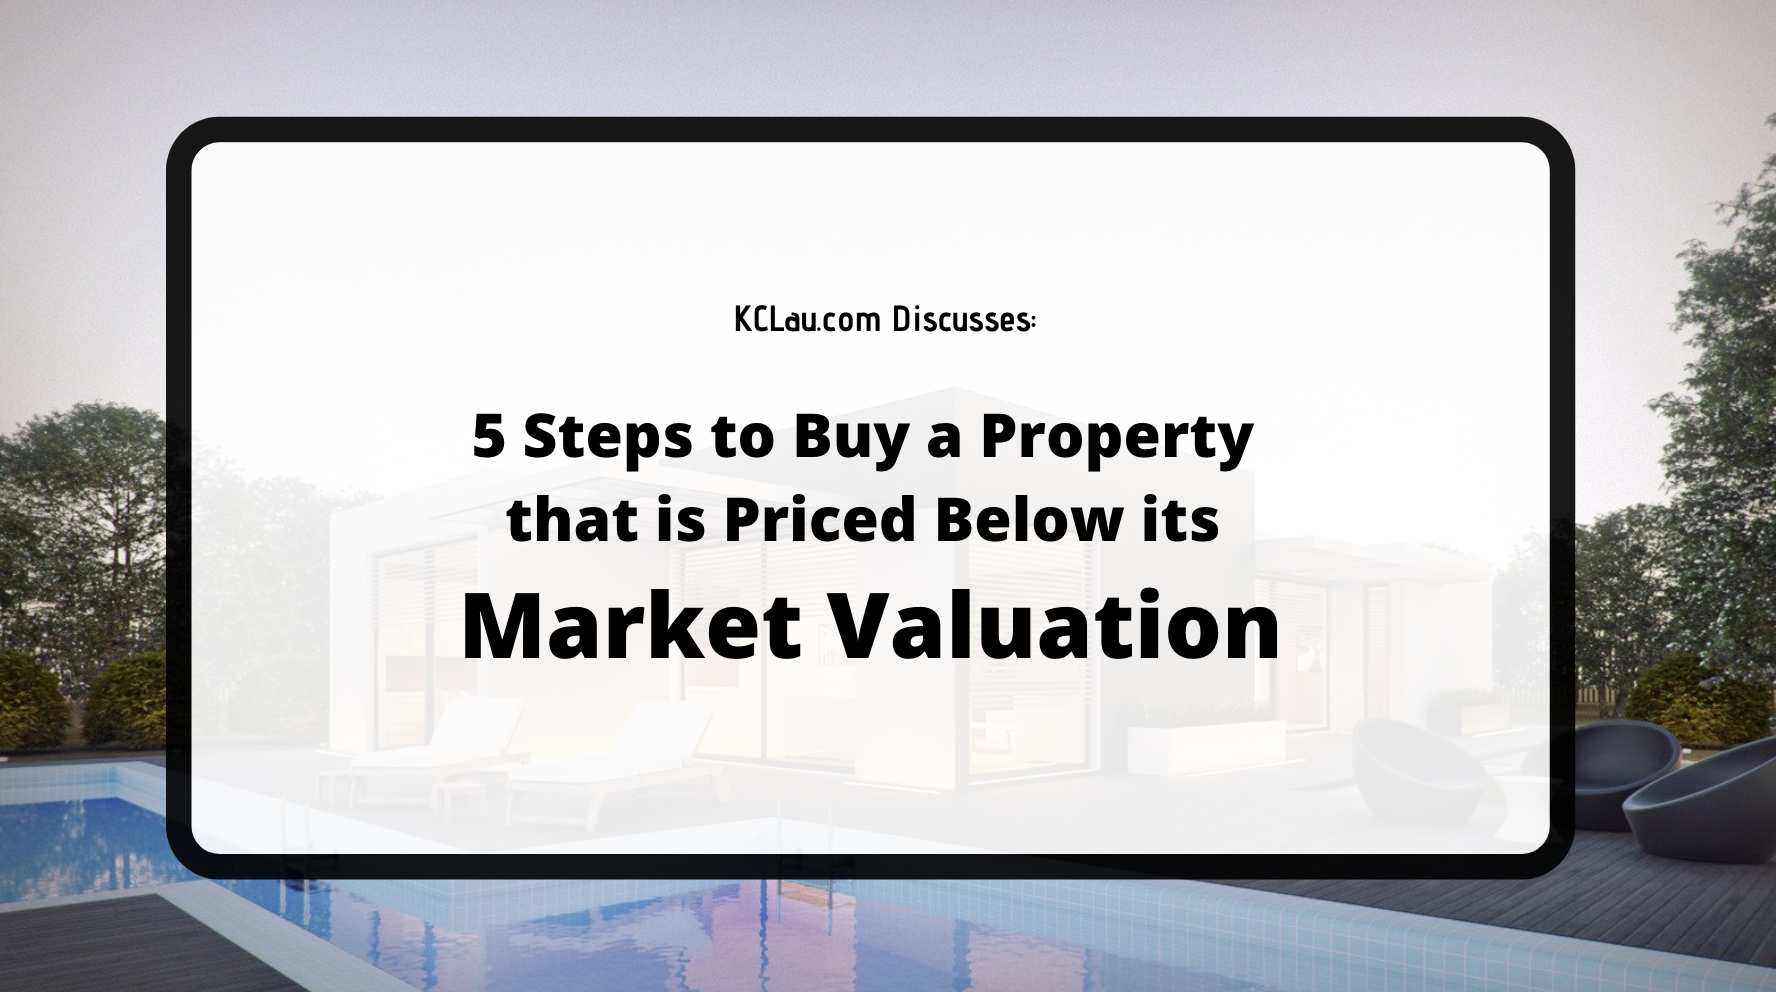 5 Steps to Buy a Property that is Priced Below its Market Valuation